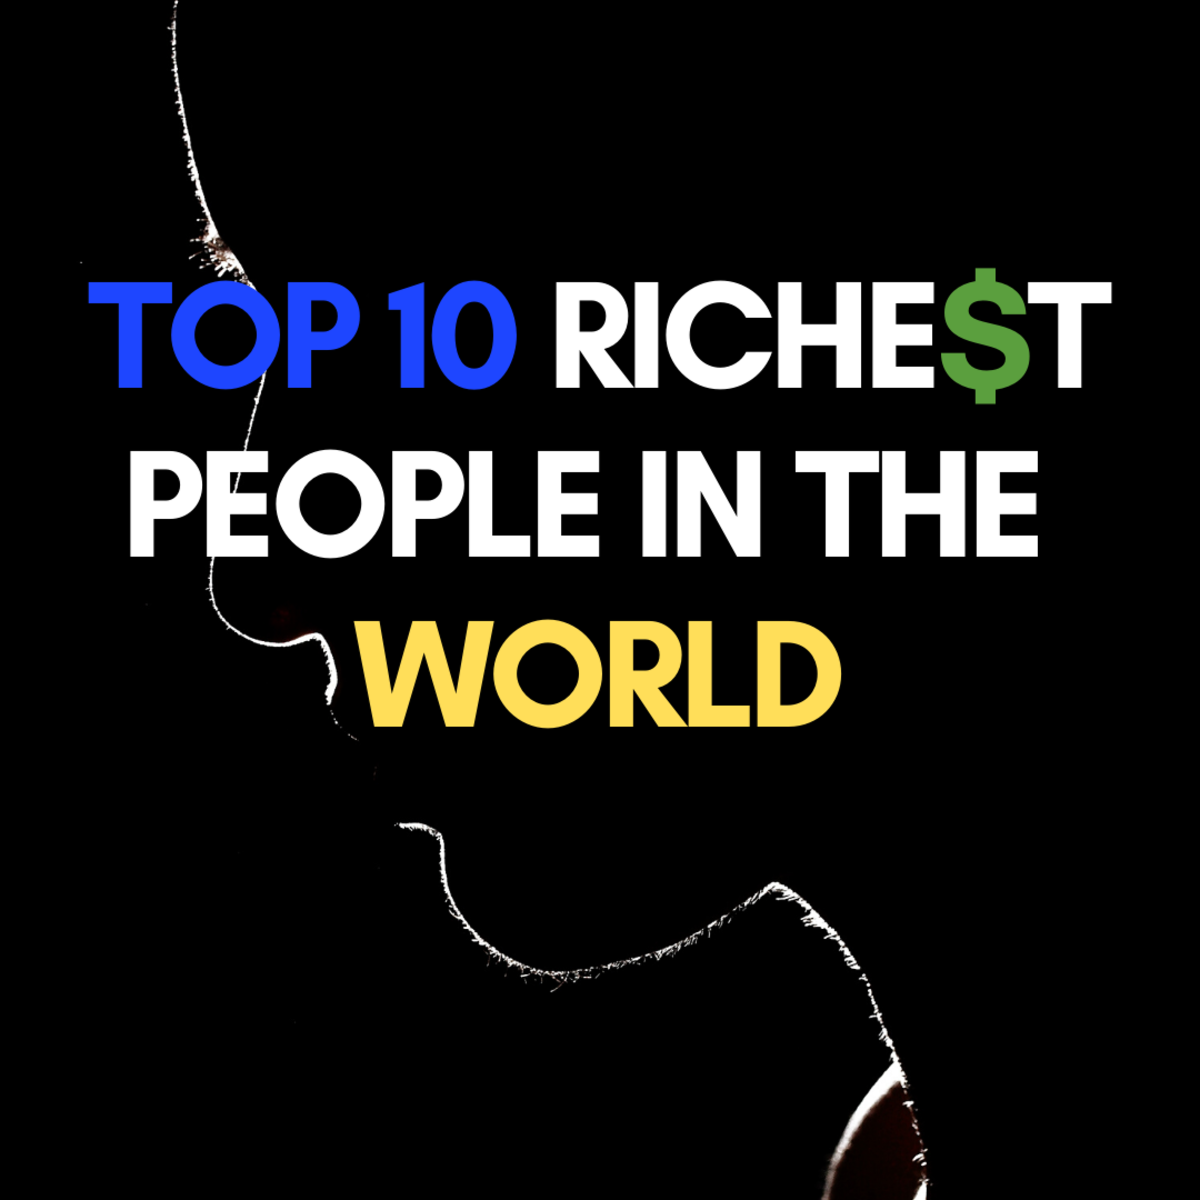 Billionaires: The Top 10 Richest People in the World